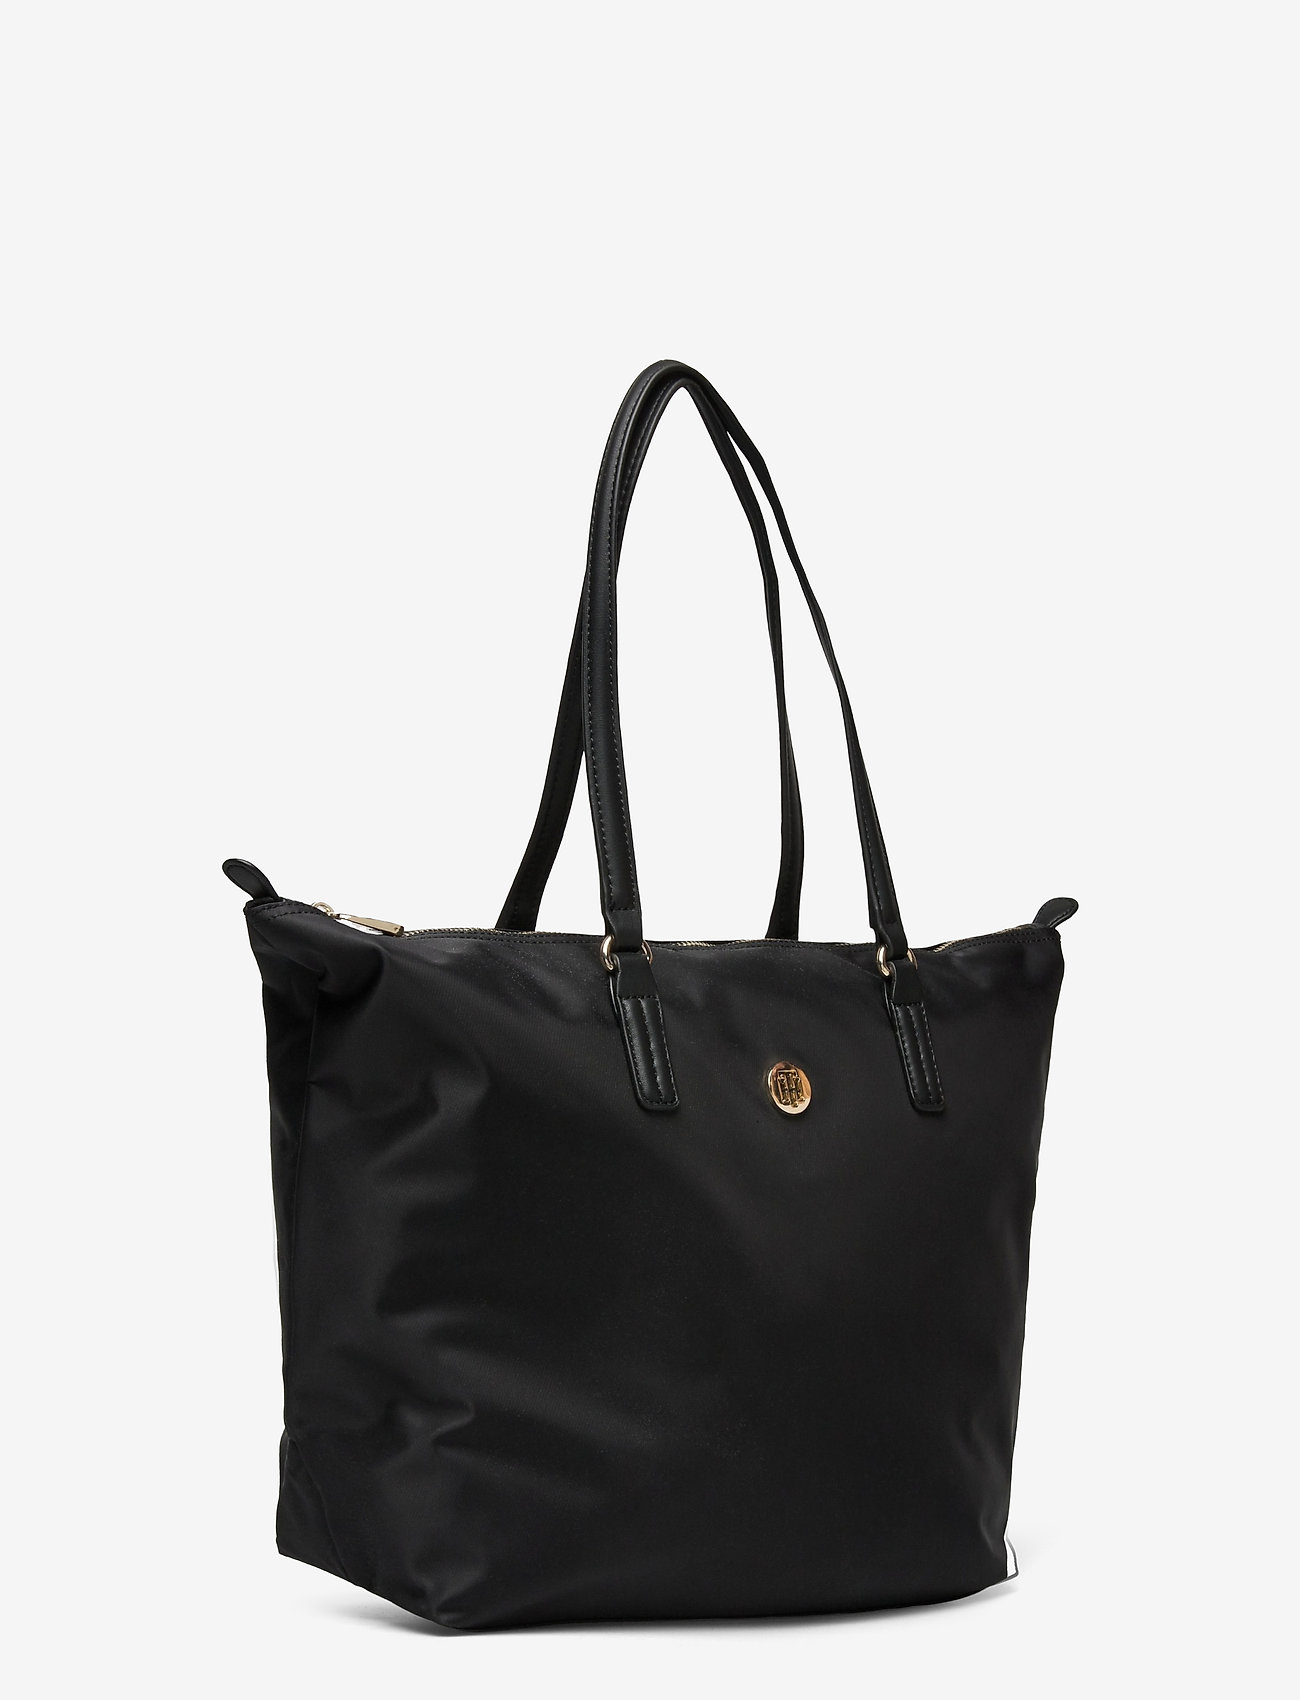 Tommy Hilfiger - POPPY TOTE - totes - black - 2